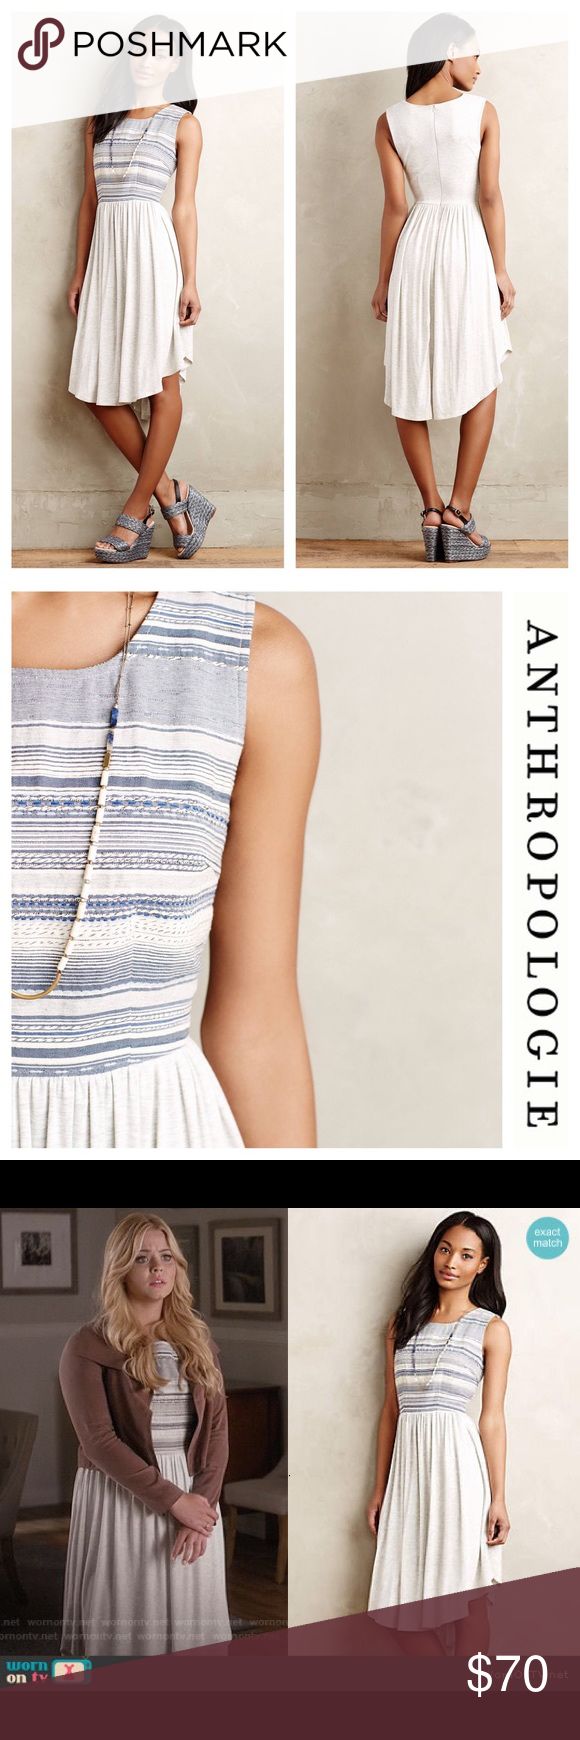 99647ff5d86a8 Anthropologie Dolan Left Coast Sabado Dress Blue L Anthropology brand Dolan  Left Coast Collection Sabado Dress! You may have seen this dress on Ali  from ...